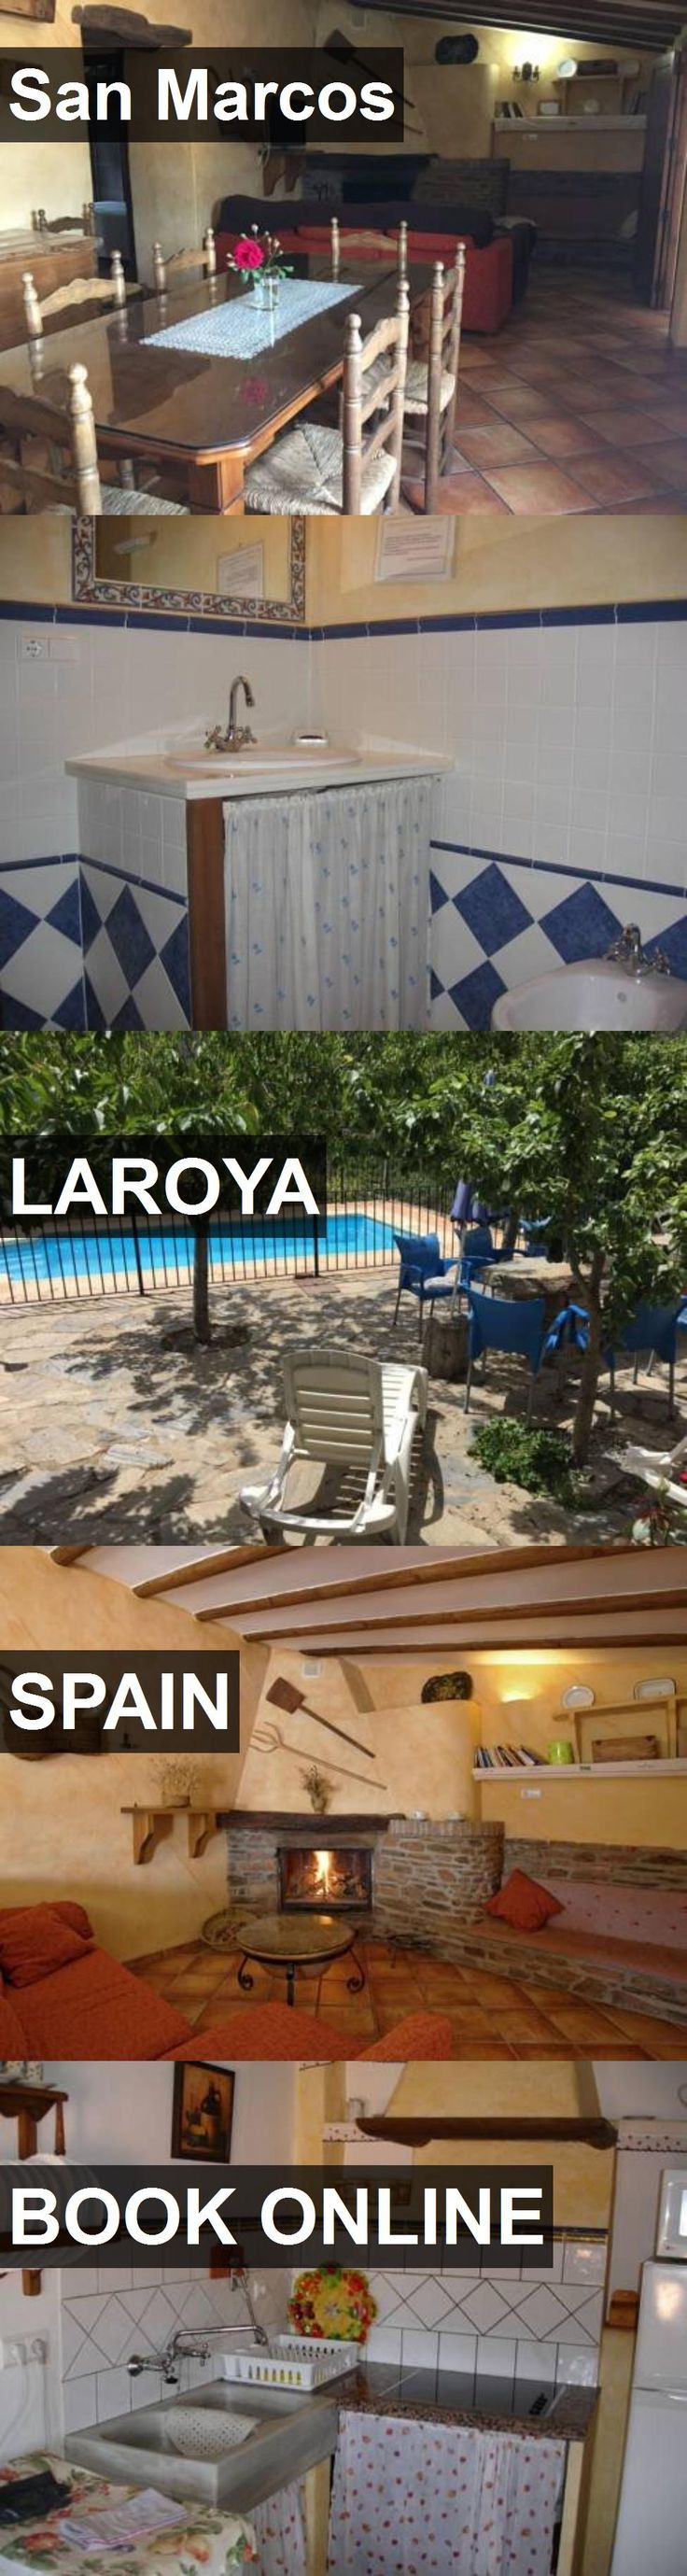 Hotel San Marcos in Laroya, Spain. For more information, photos, reviews and best prices please follow the link. #Spain #Laroya #SanMarcos #hotel #travel #vacation